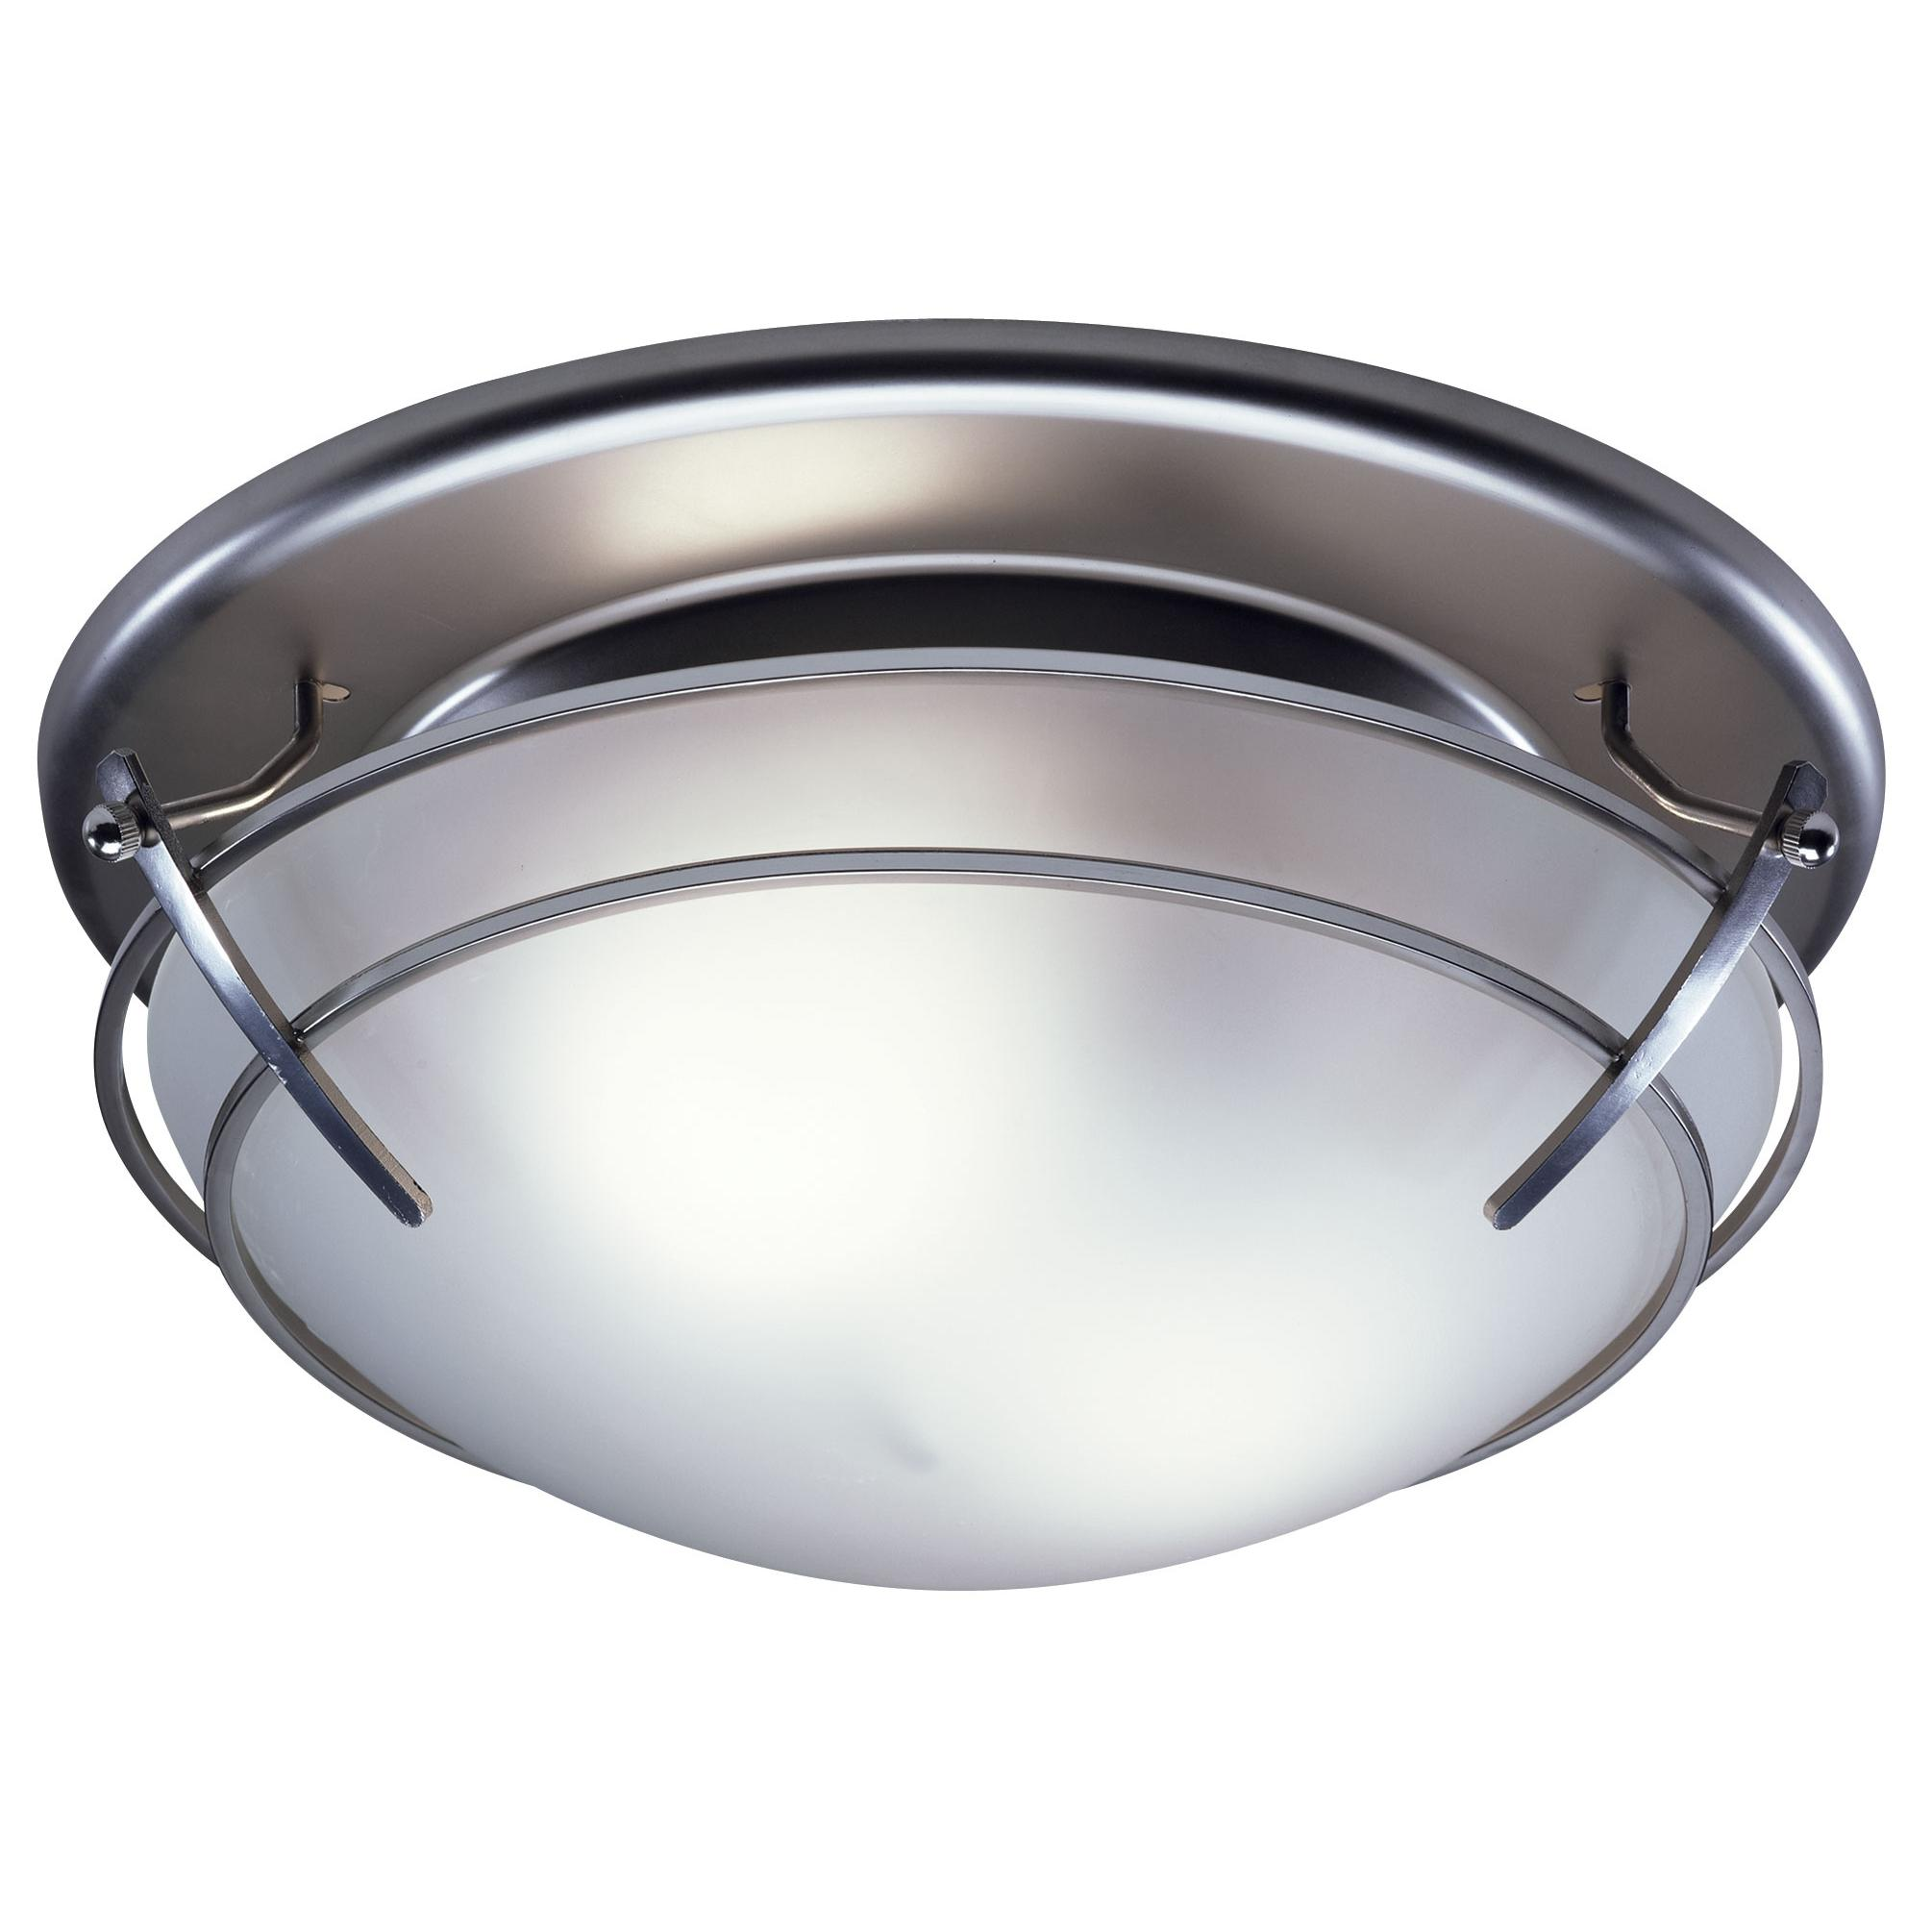 Broan 757sn decorative ventilation fan and light 80 cfm 25 sones broan 757sn decorative fanlight with glass globe 80 cfm satin nickel arubaitofo Images